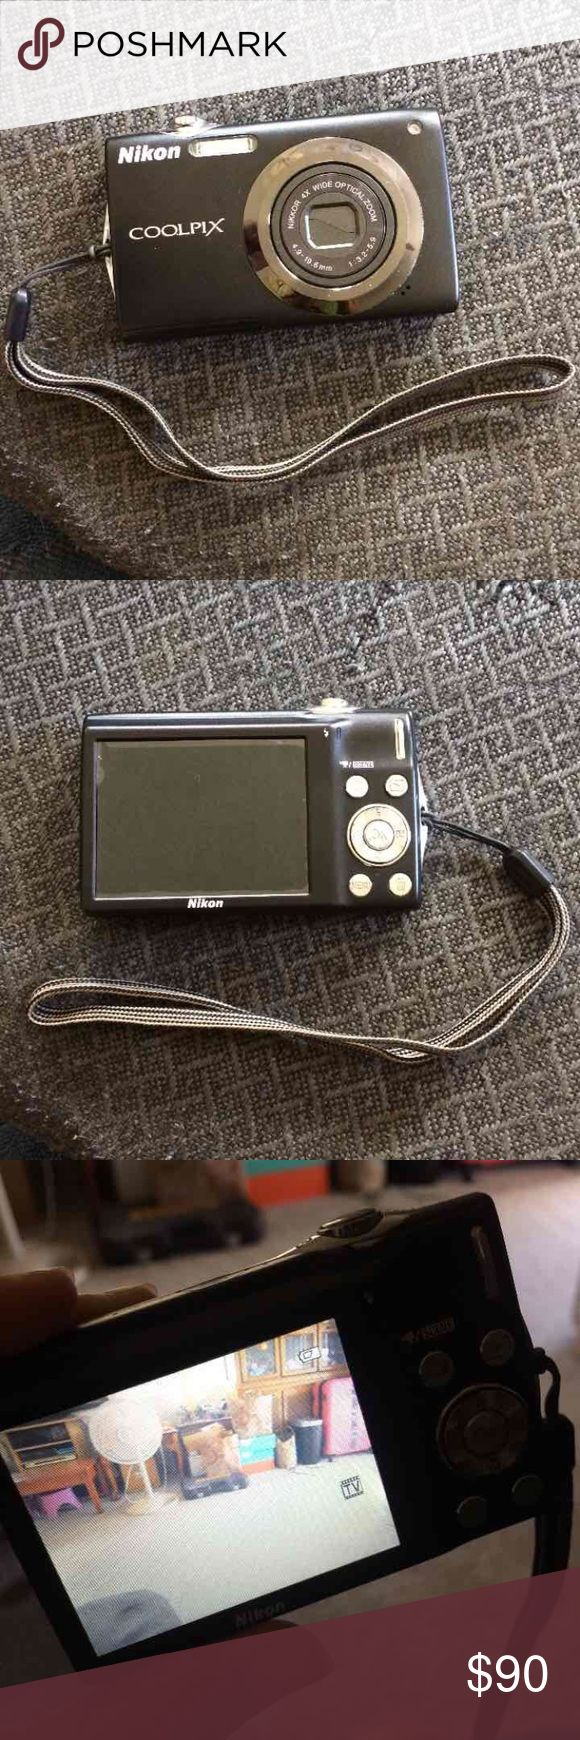 Nikon Coolpix Camera Still in good condition.  Works perfectly.  Has small scratches. Have charger. Other